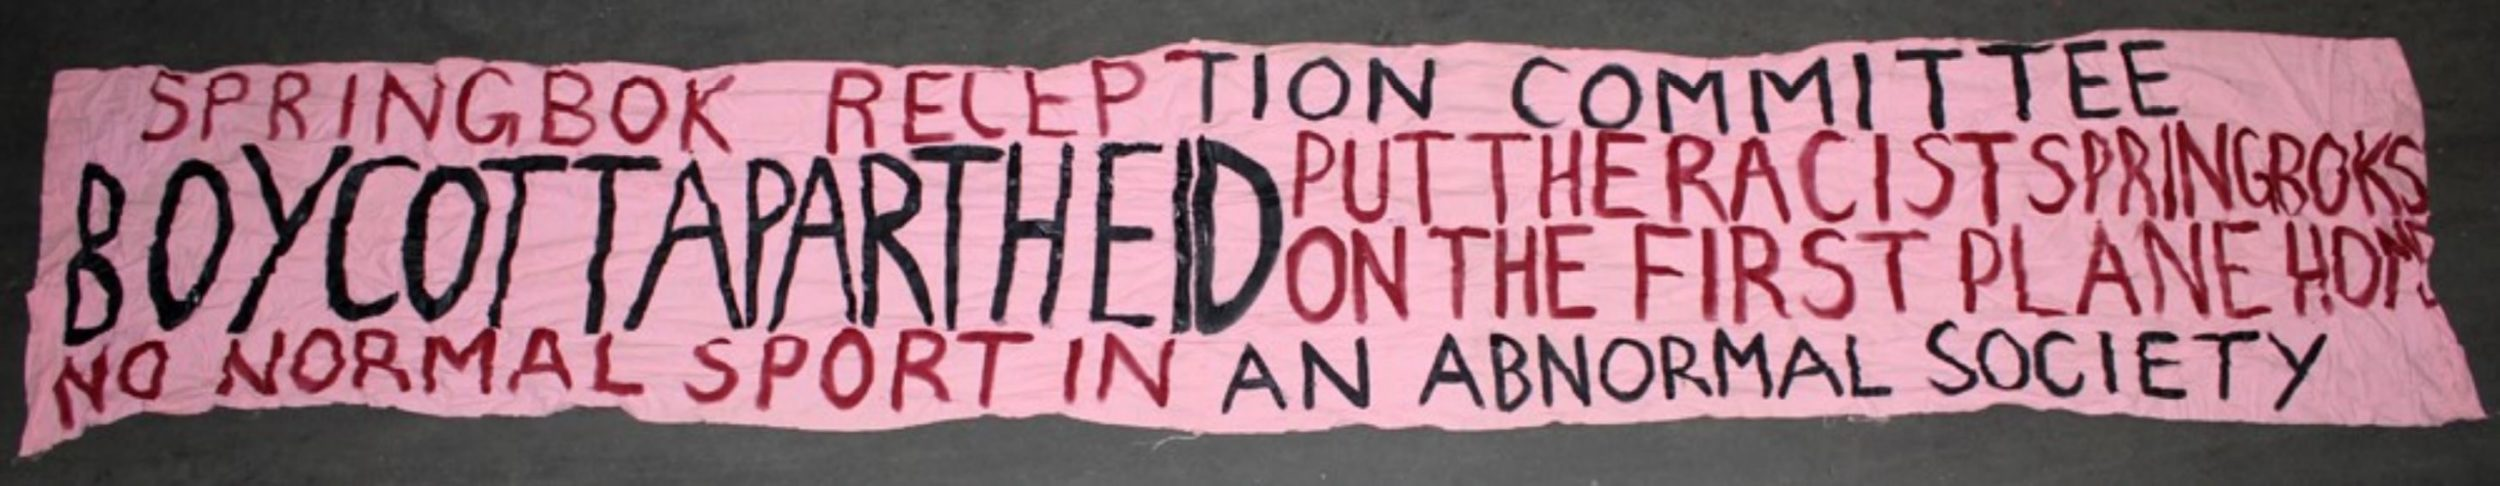 """A banner with the message """"Springbok reception committee. Boycott apartheid. Put the racist Springboks on the first plane home. No normal sport in an abnormal society."""""""